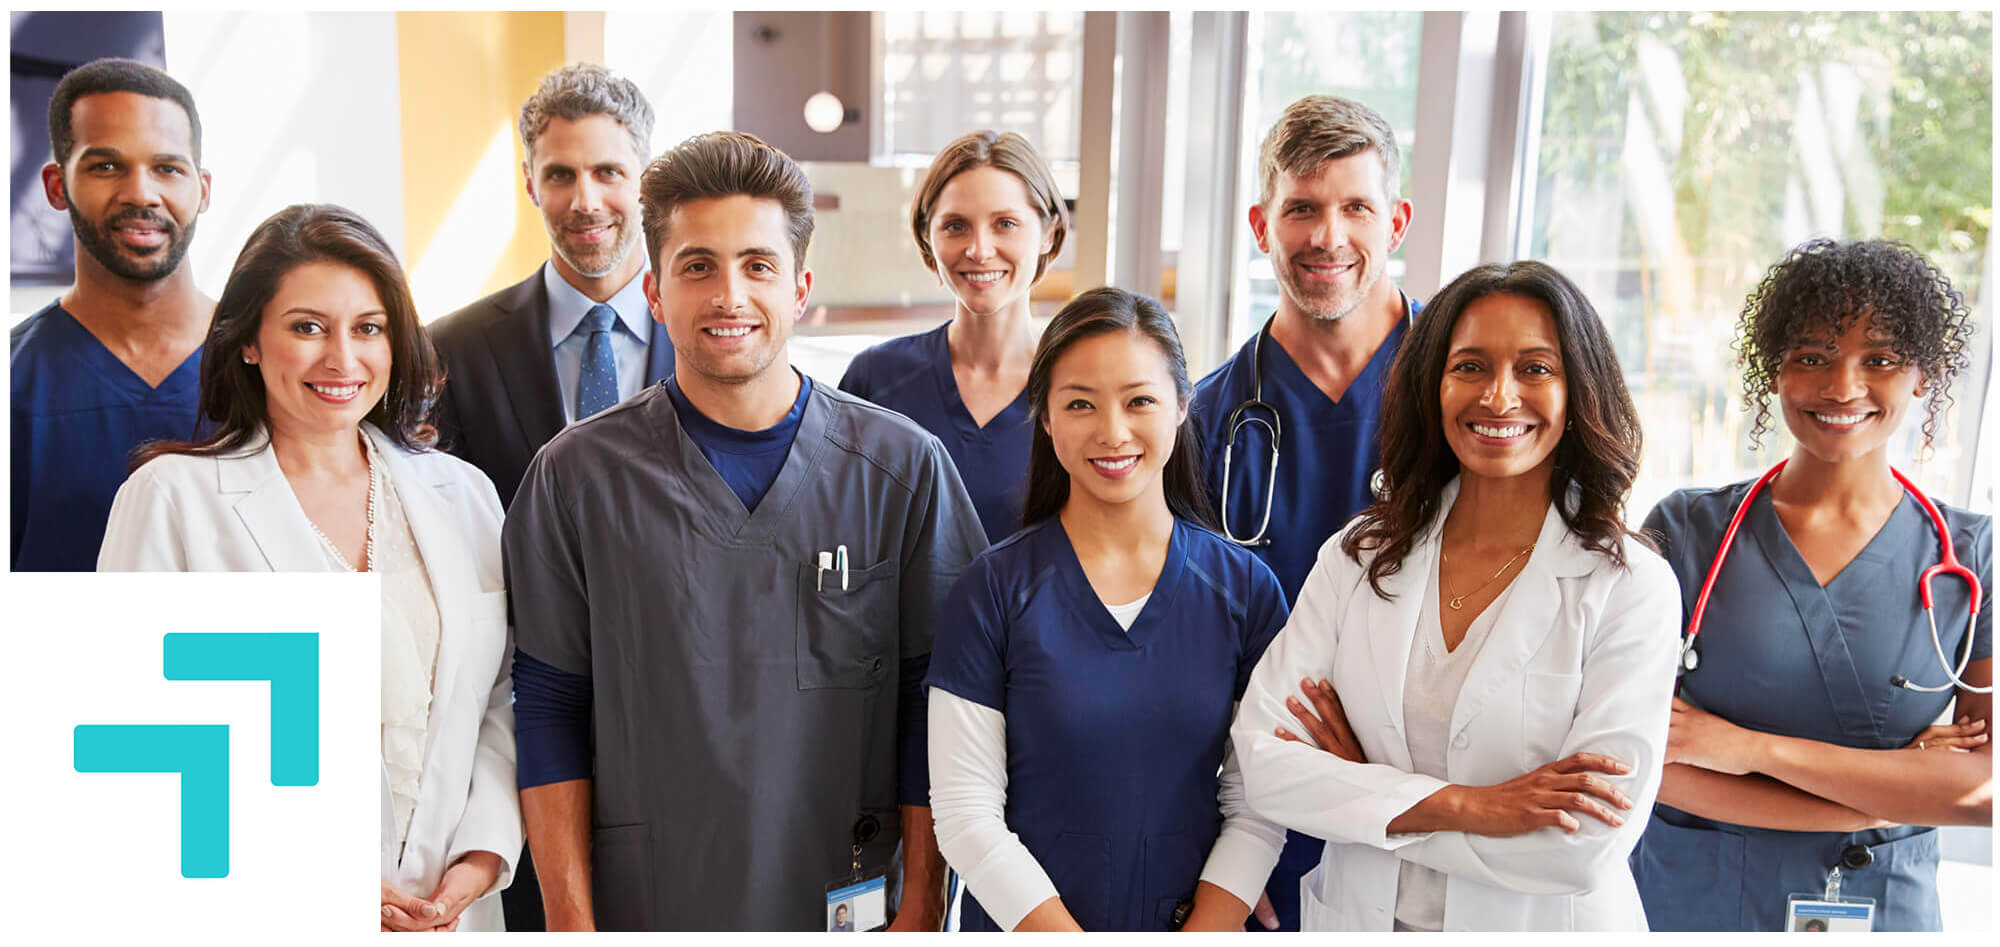 Human Resources – Cook County Health